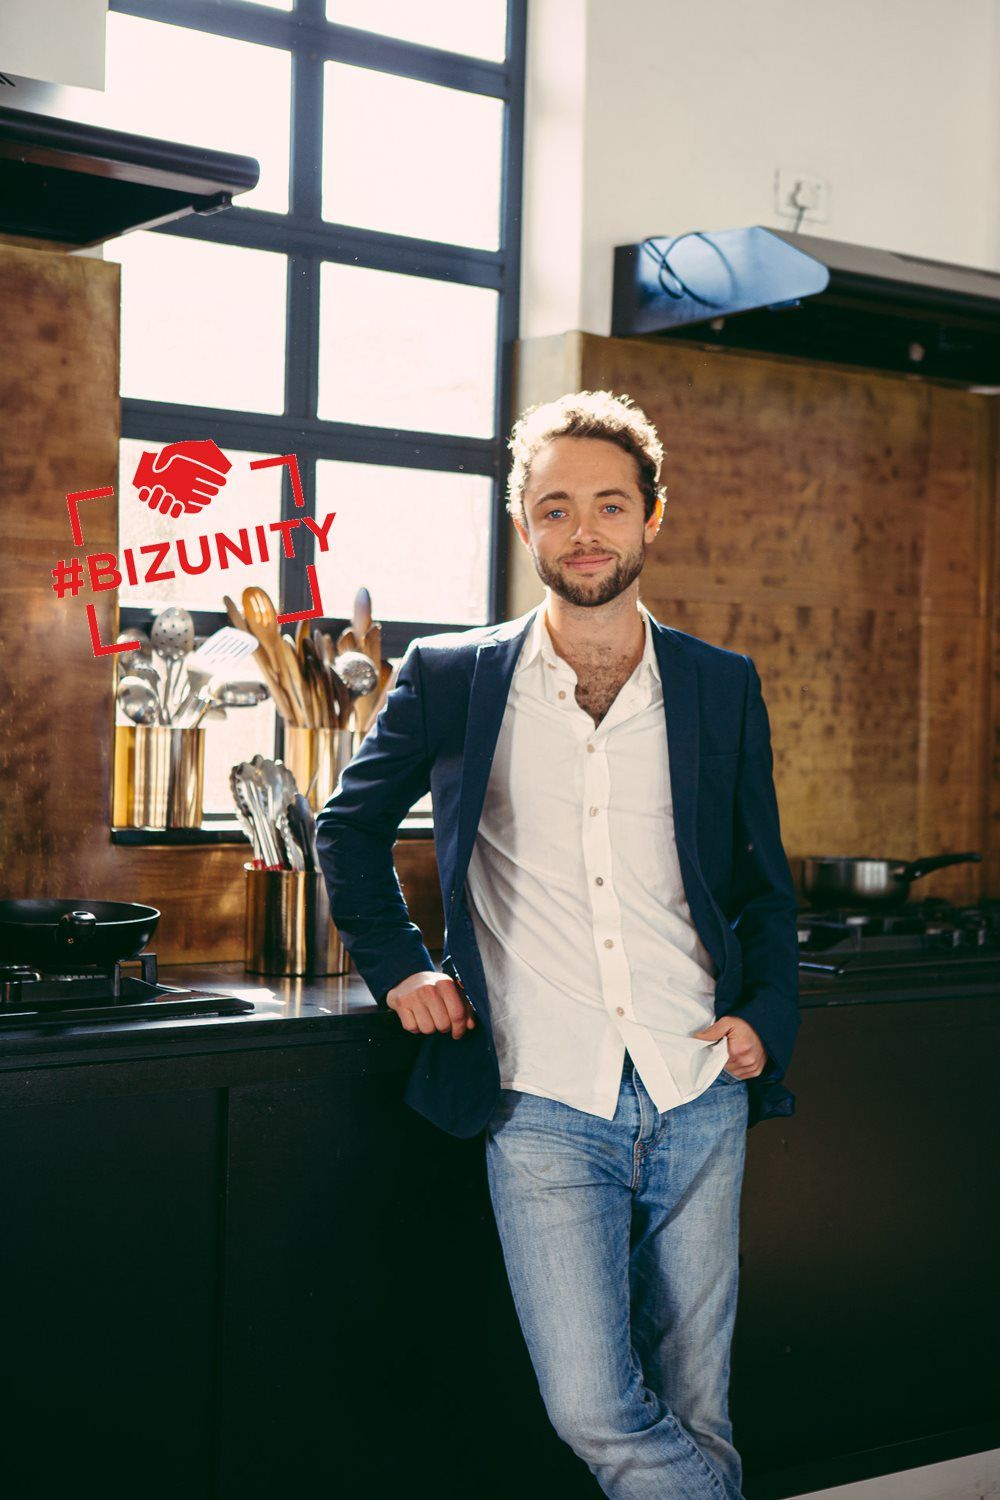 #bizunity: How Ucook's Paying It Forward As Partners Feel The Pinch photo